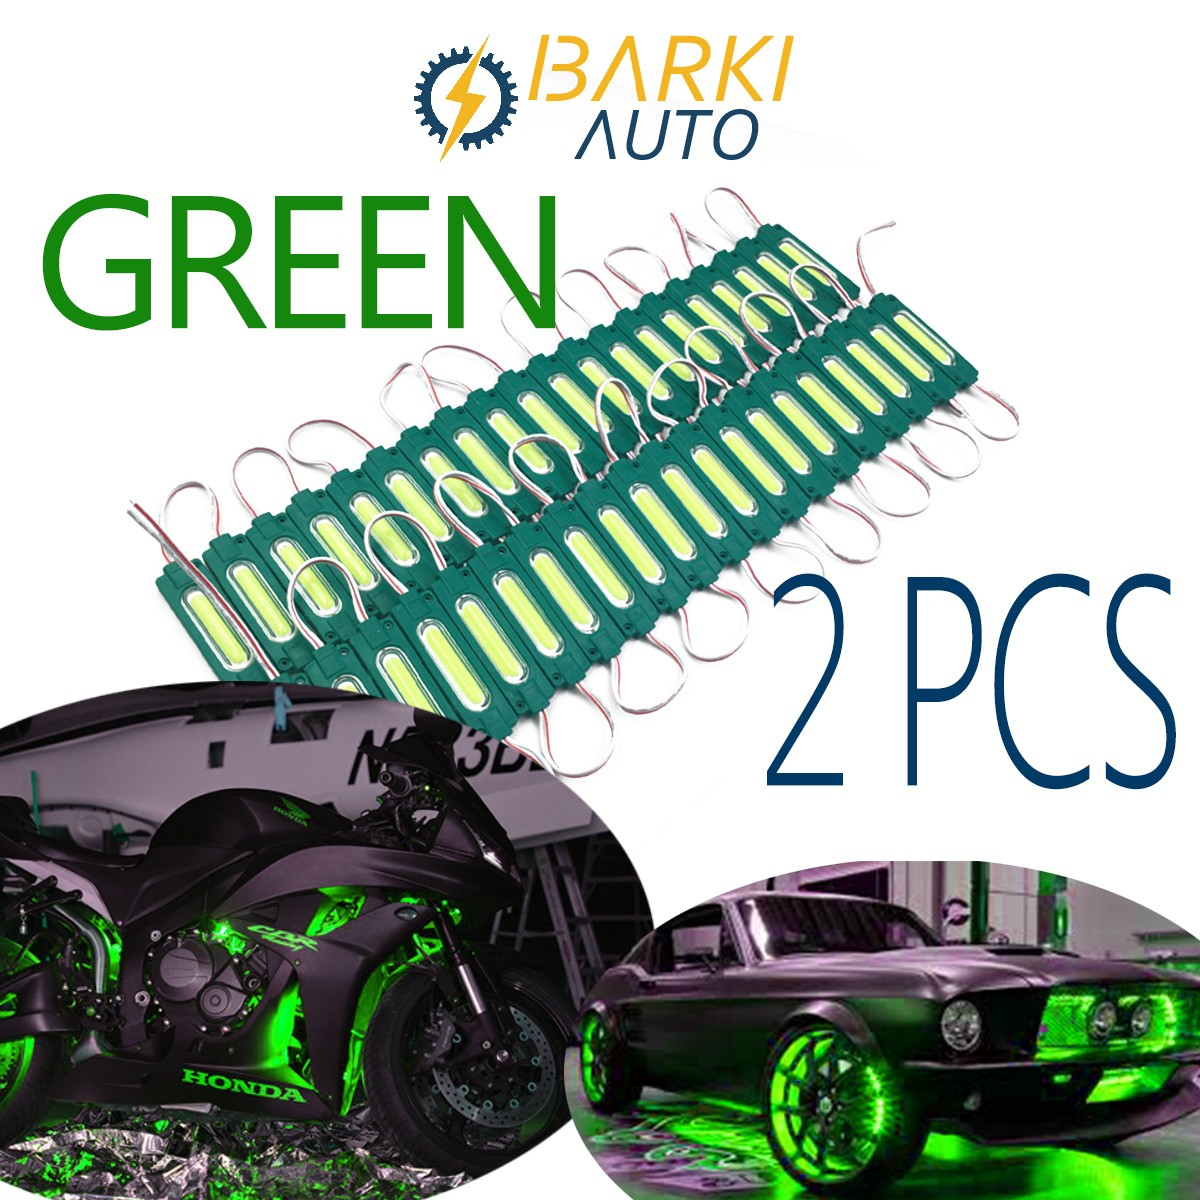 2 pcs 12v Fancy LED Light Very Bright Colourful light for Decoration and Lighting for car and bike